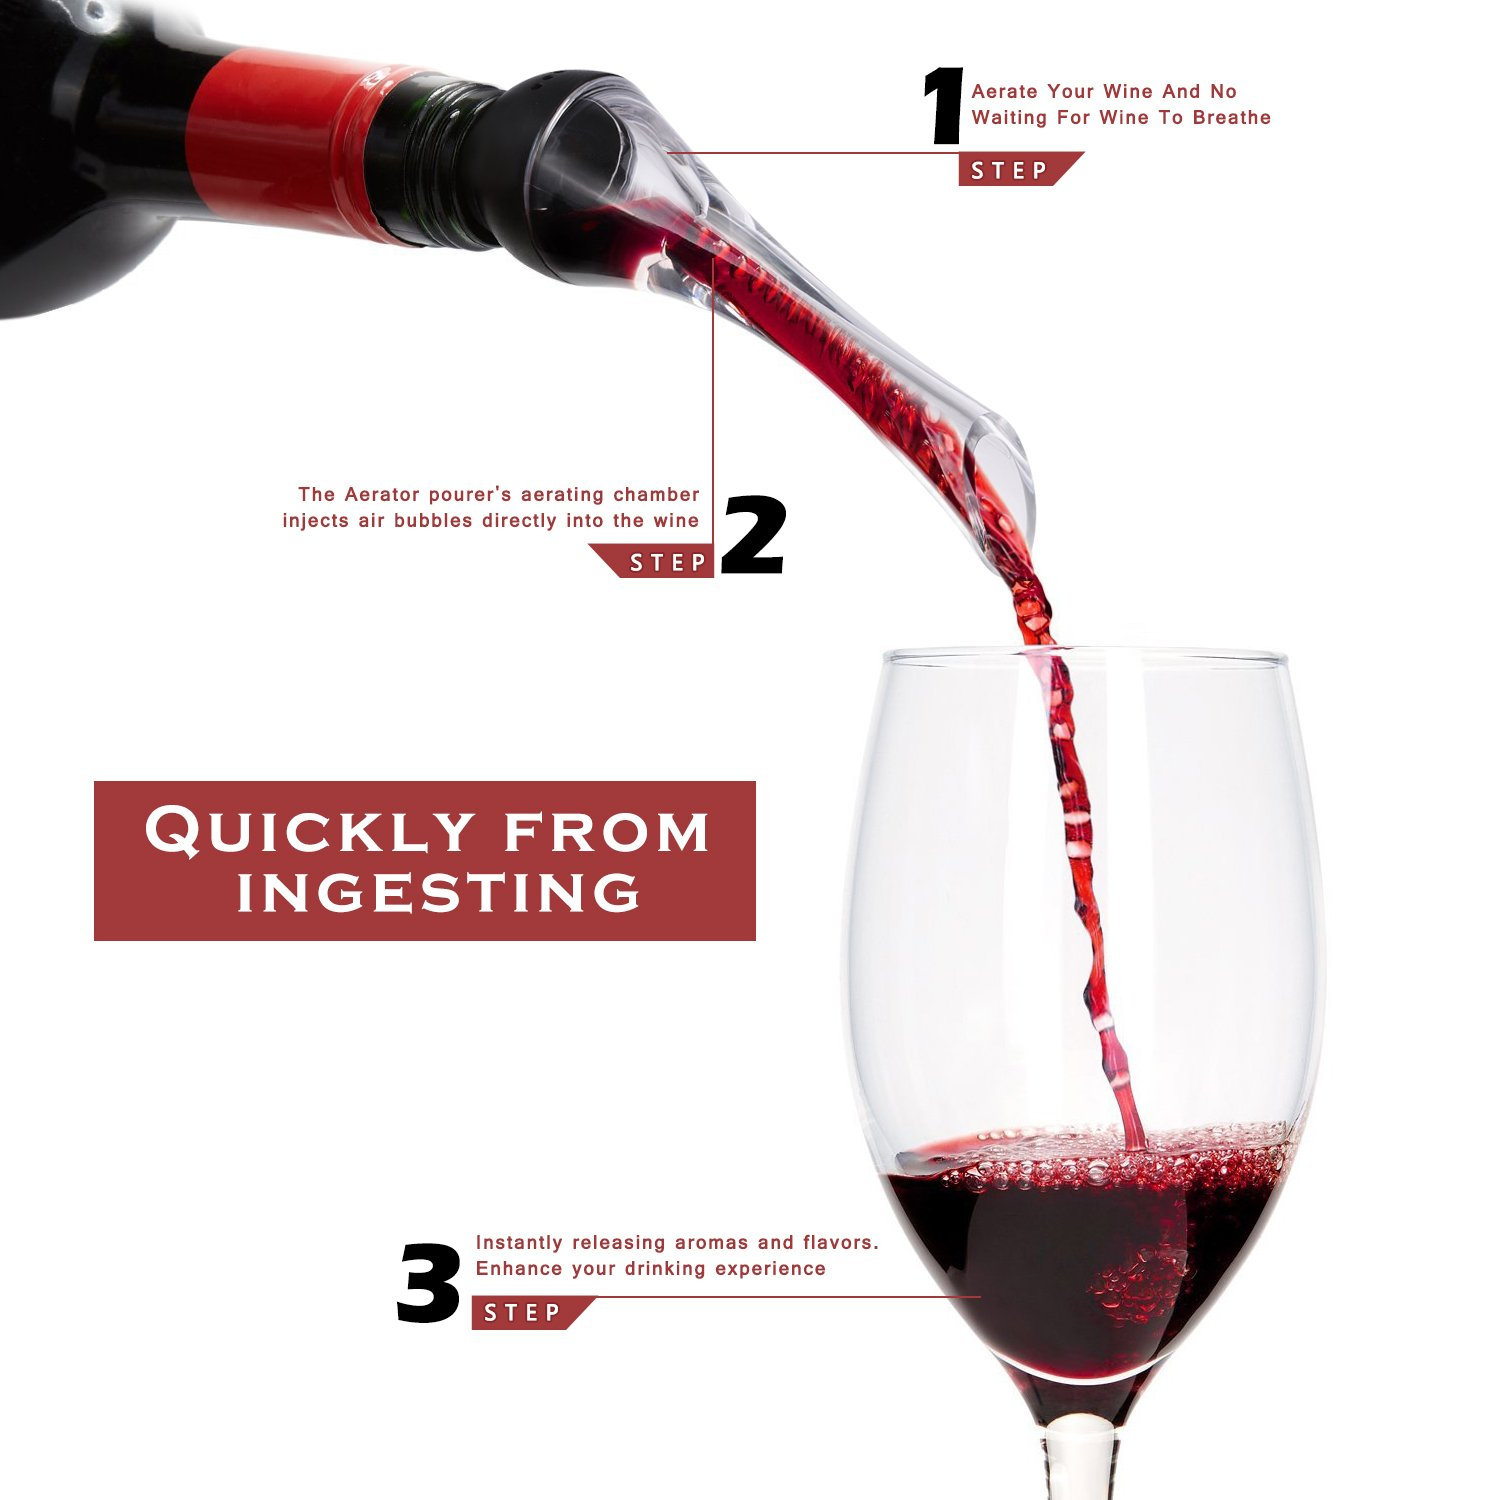 Wine Aerator Pourer,  Premium Aerating Pourer and Decanter Spout, Breather Excellent for Whiskey by MOSPRO (Image #2)